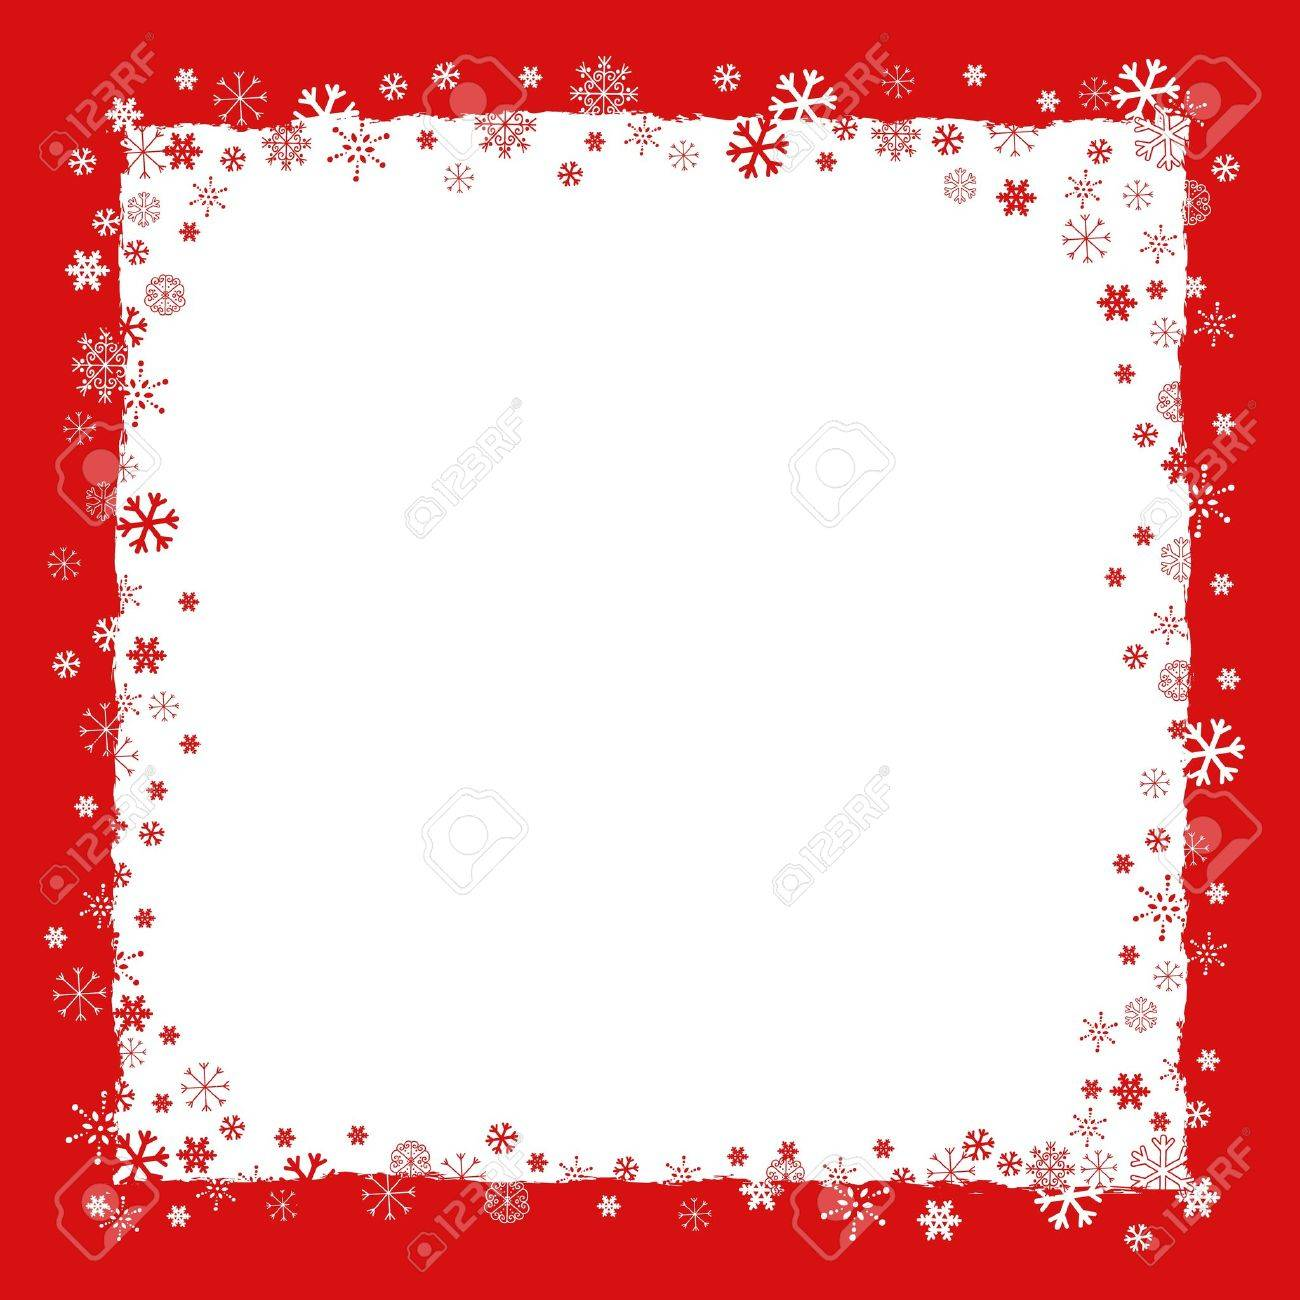 New Year  Christmas  background with snowflakes border and grunge elements Stock Vector - 16858117